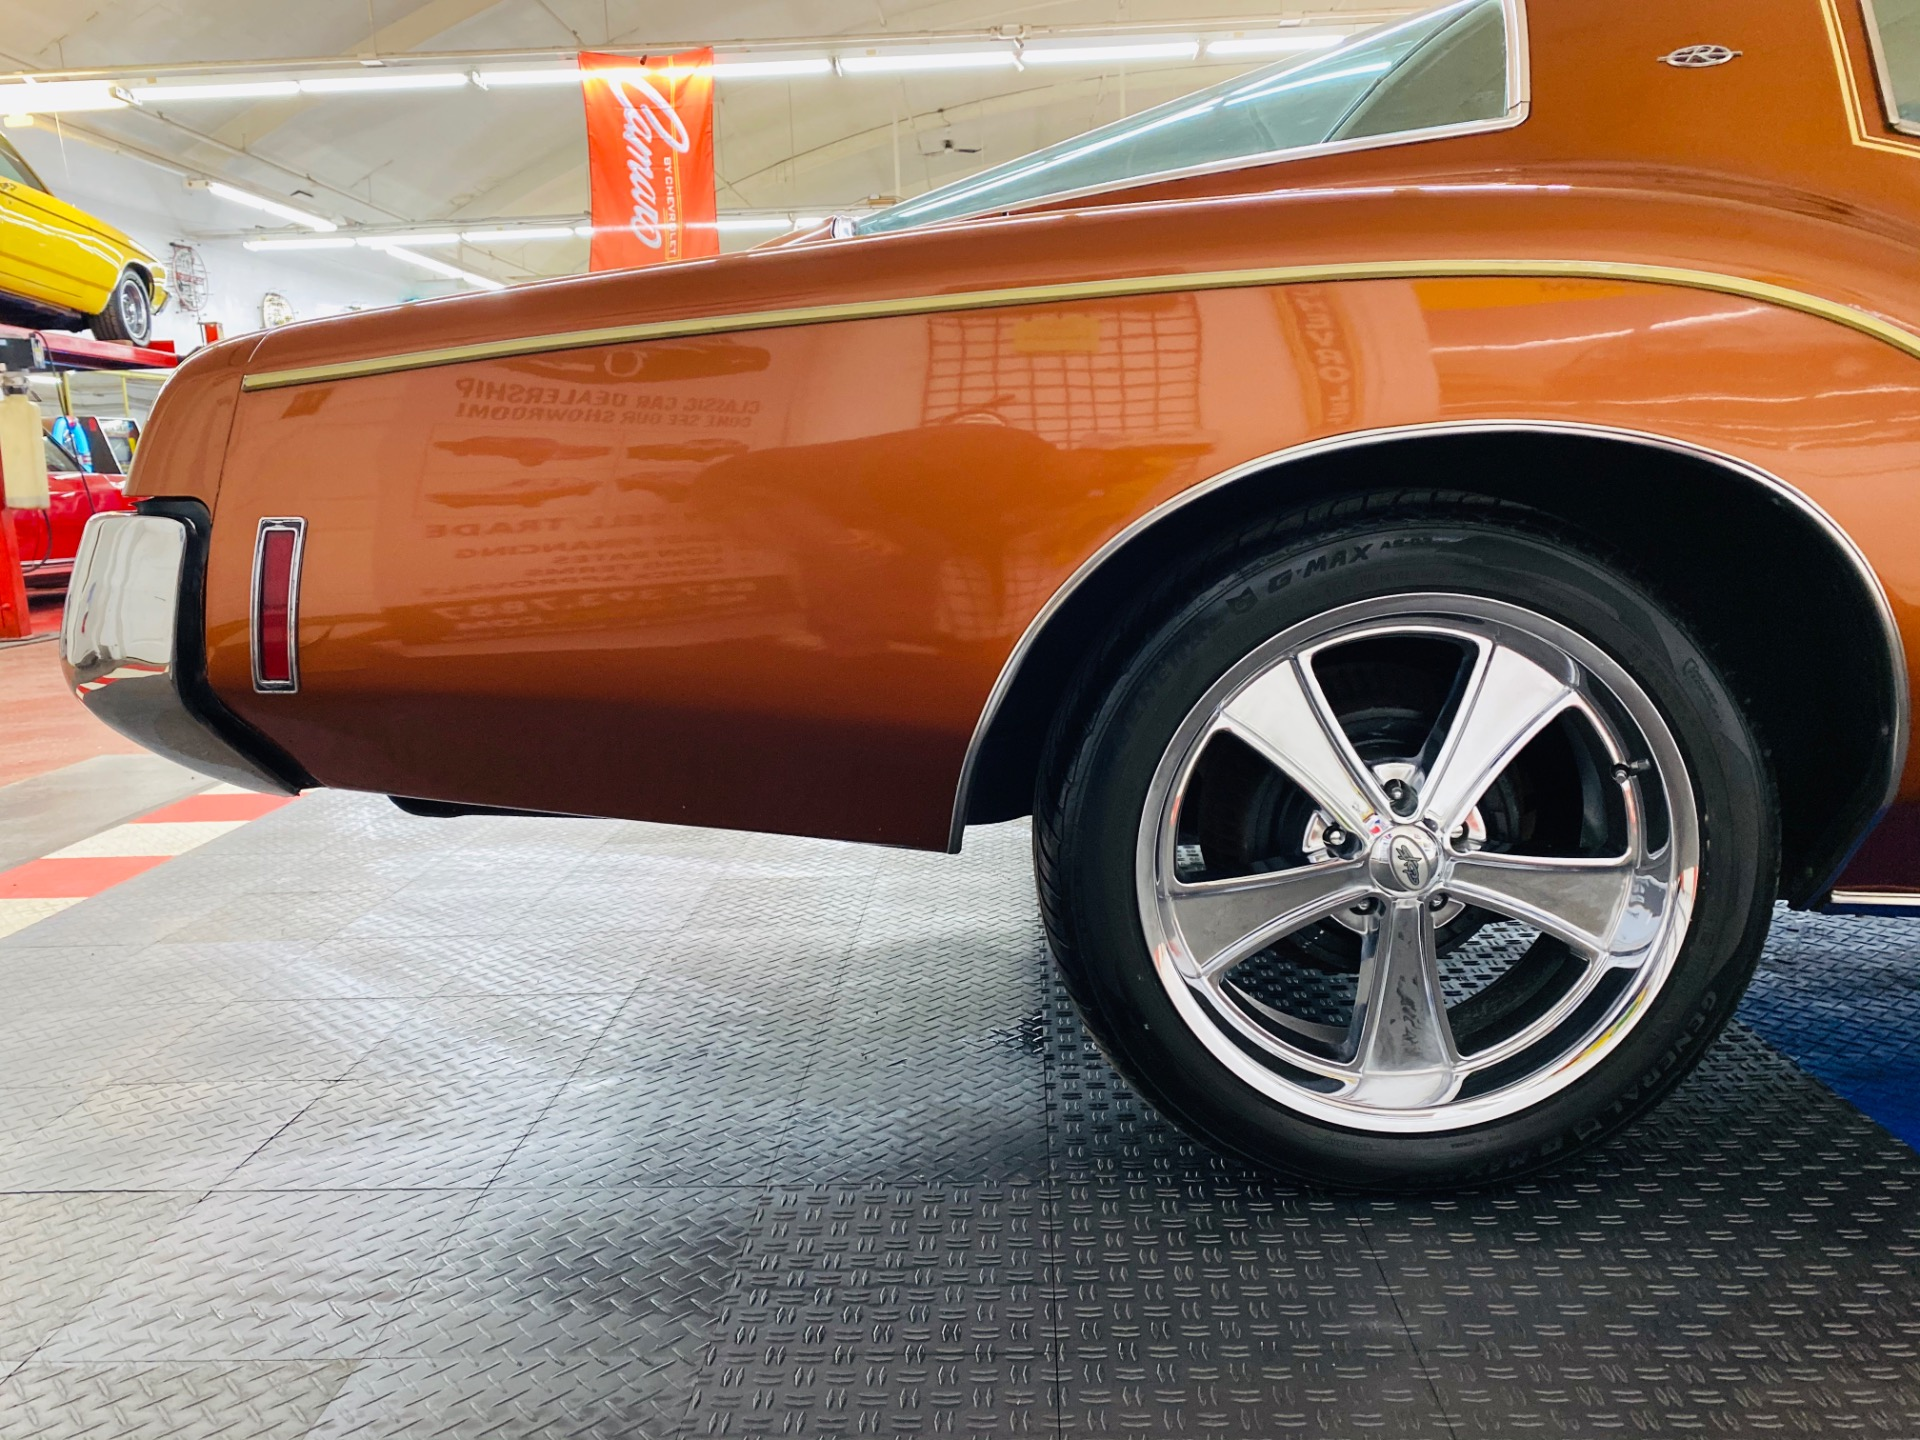 Used 1973 Buick Riviera - BOAT TAIL RESTO MOD - 455 ENGINE - SEE VIDEO - | Mundelein, IL